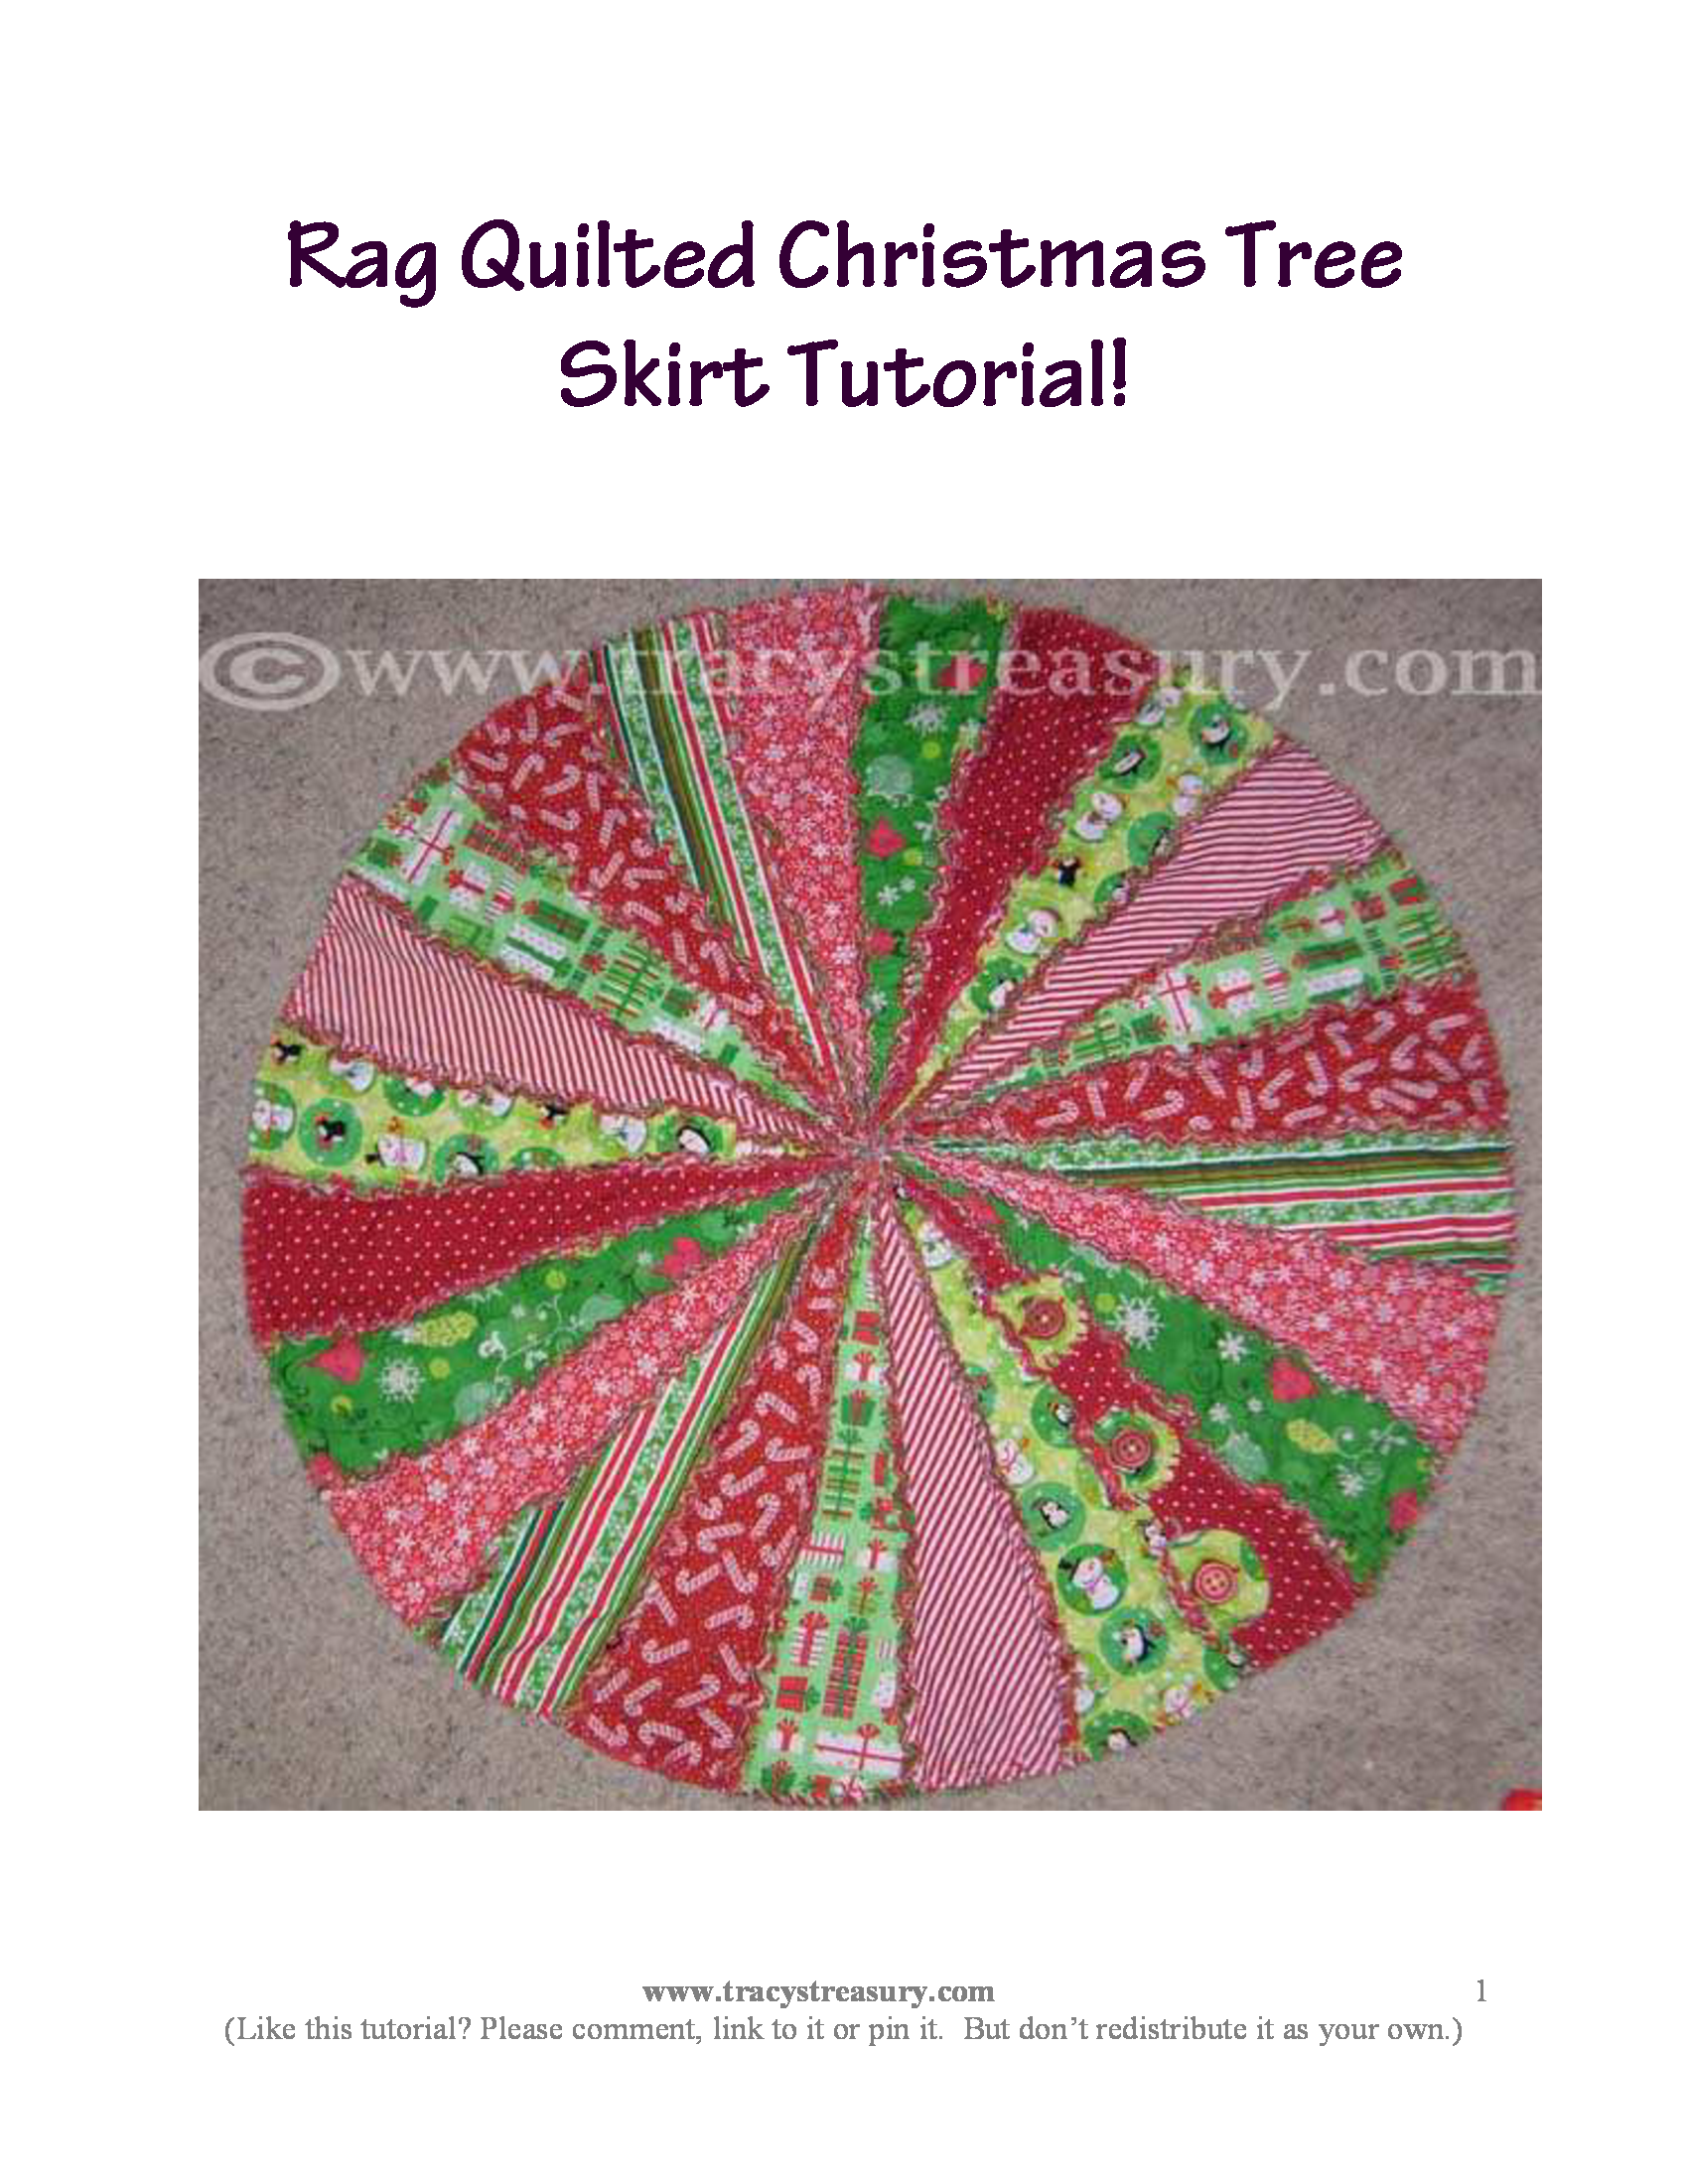 Rag Quilted Christmas Tree Skirt | Christmas crafts/food ... : rag quilt christmas tree skirt pattern - Adamdwight.com